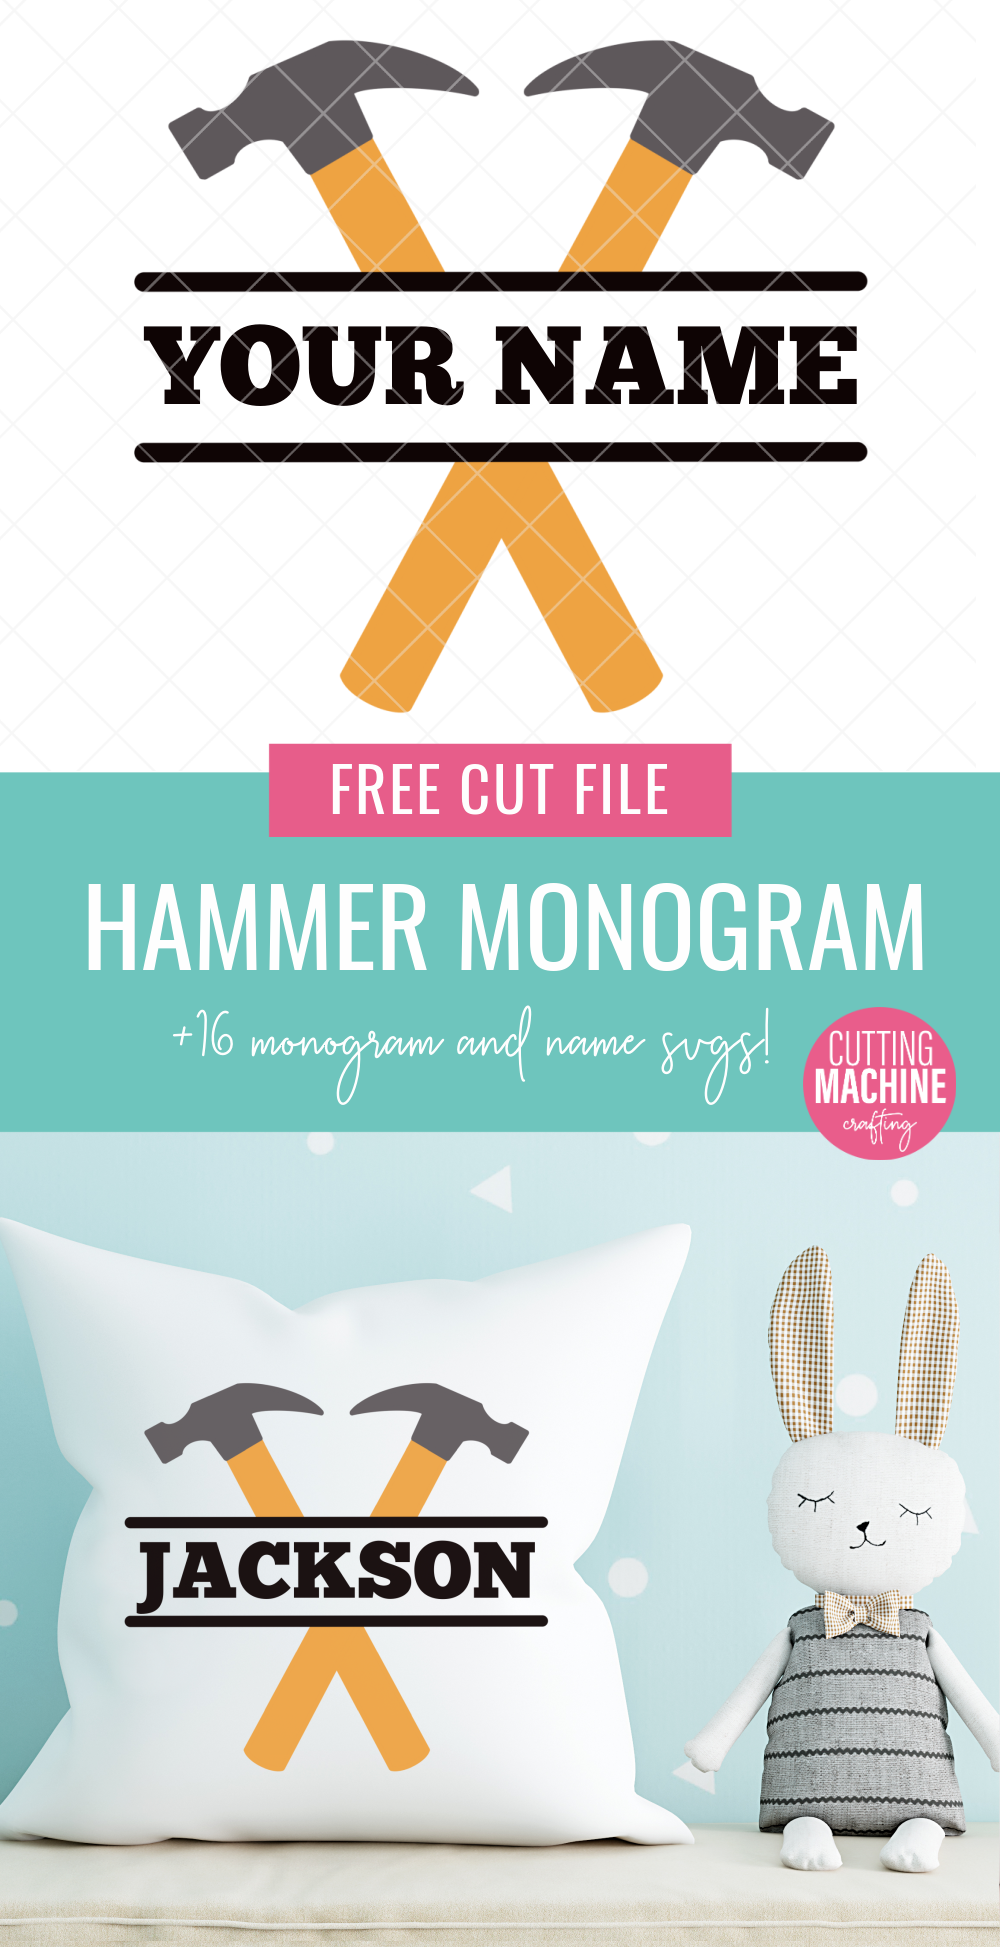 This free hammer monogram svg is ADORABLE! Perfect for making decorations for a tool themed birthday party, tool themed room decor, mugs, shirts and more! Grab this and 15 other free monogram and name cut files that you can customize for handmade gifts! Use with your Cricut or Silhouette! #monogram #hammer #tools #boysroom #personalized #handmadegifts #boysbirthday #FreeSVG #FreeCutFile #SVG #FreeSVG #CricutMade #CricutCreated #CuttingMachineCrafts